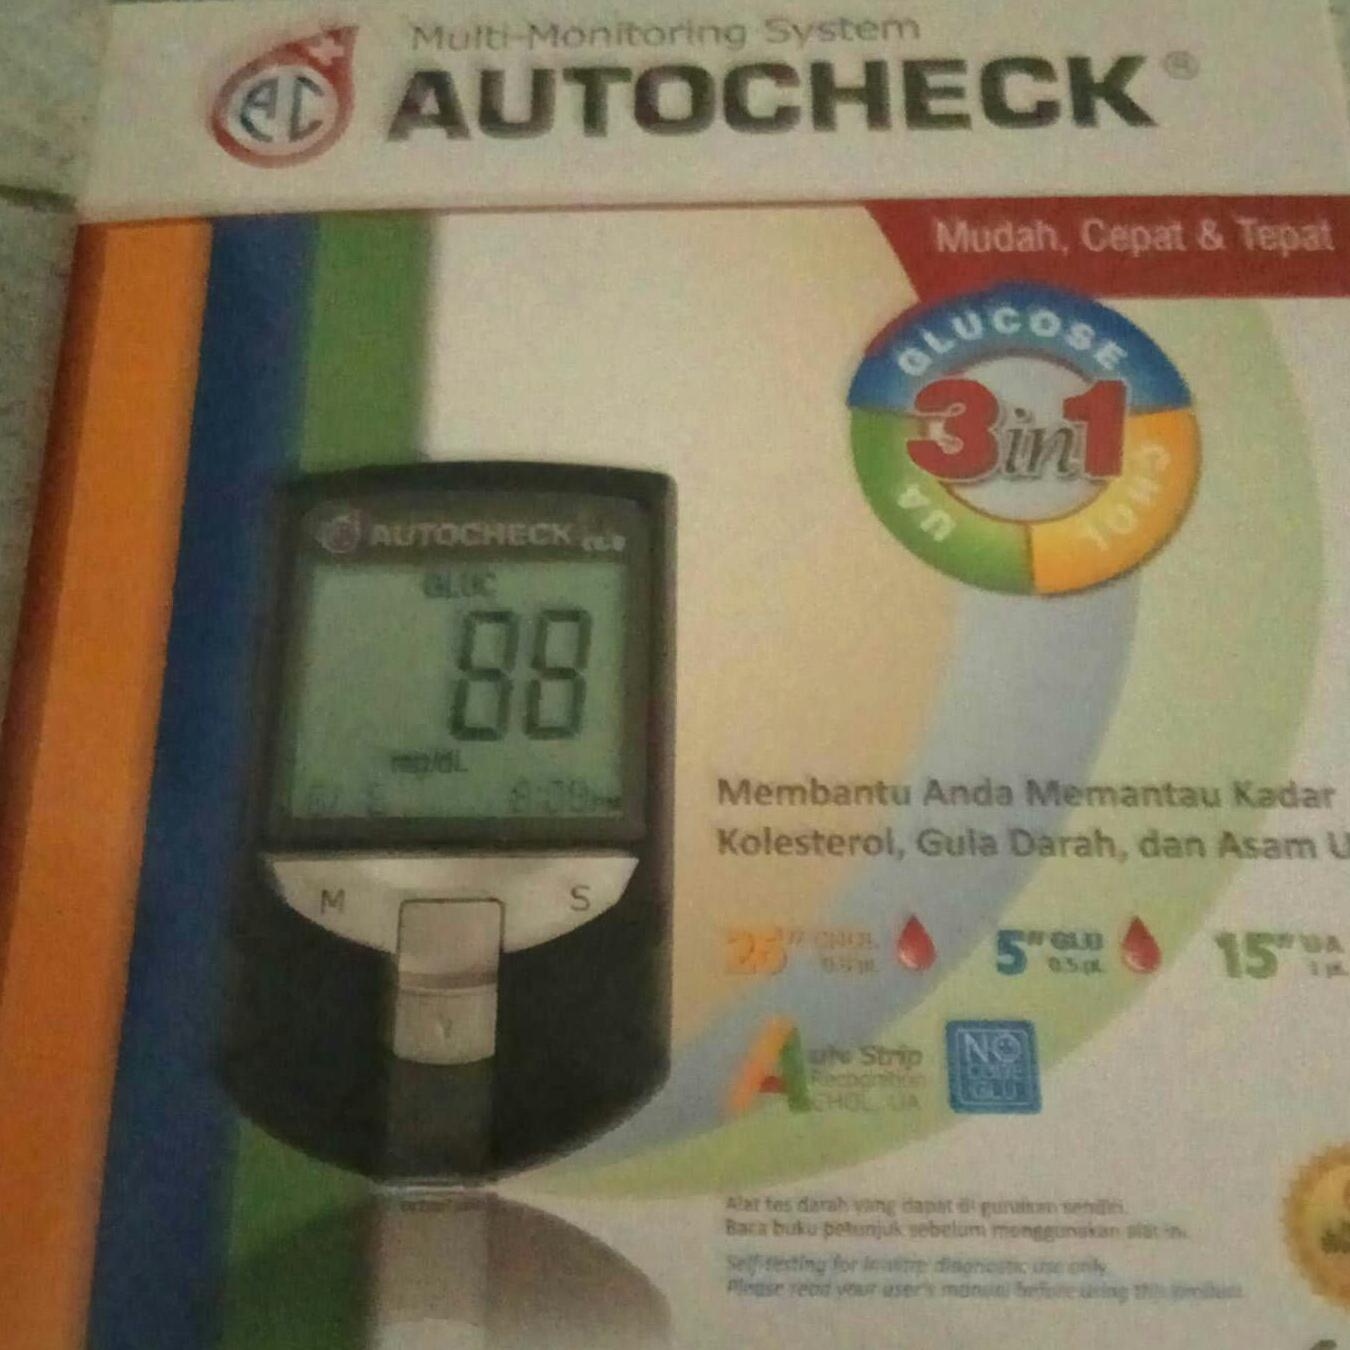 Auto check 3 in 1 meter